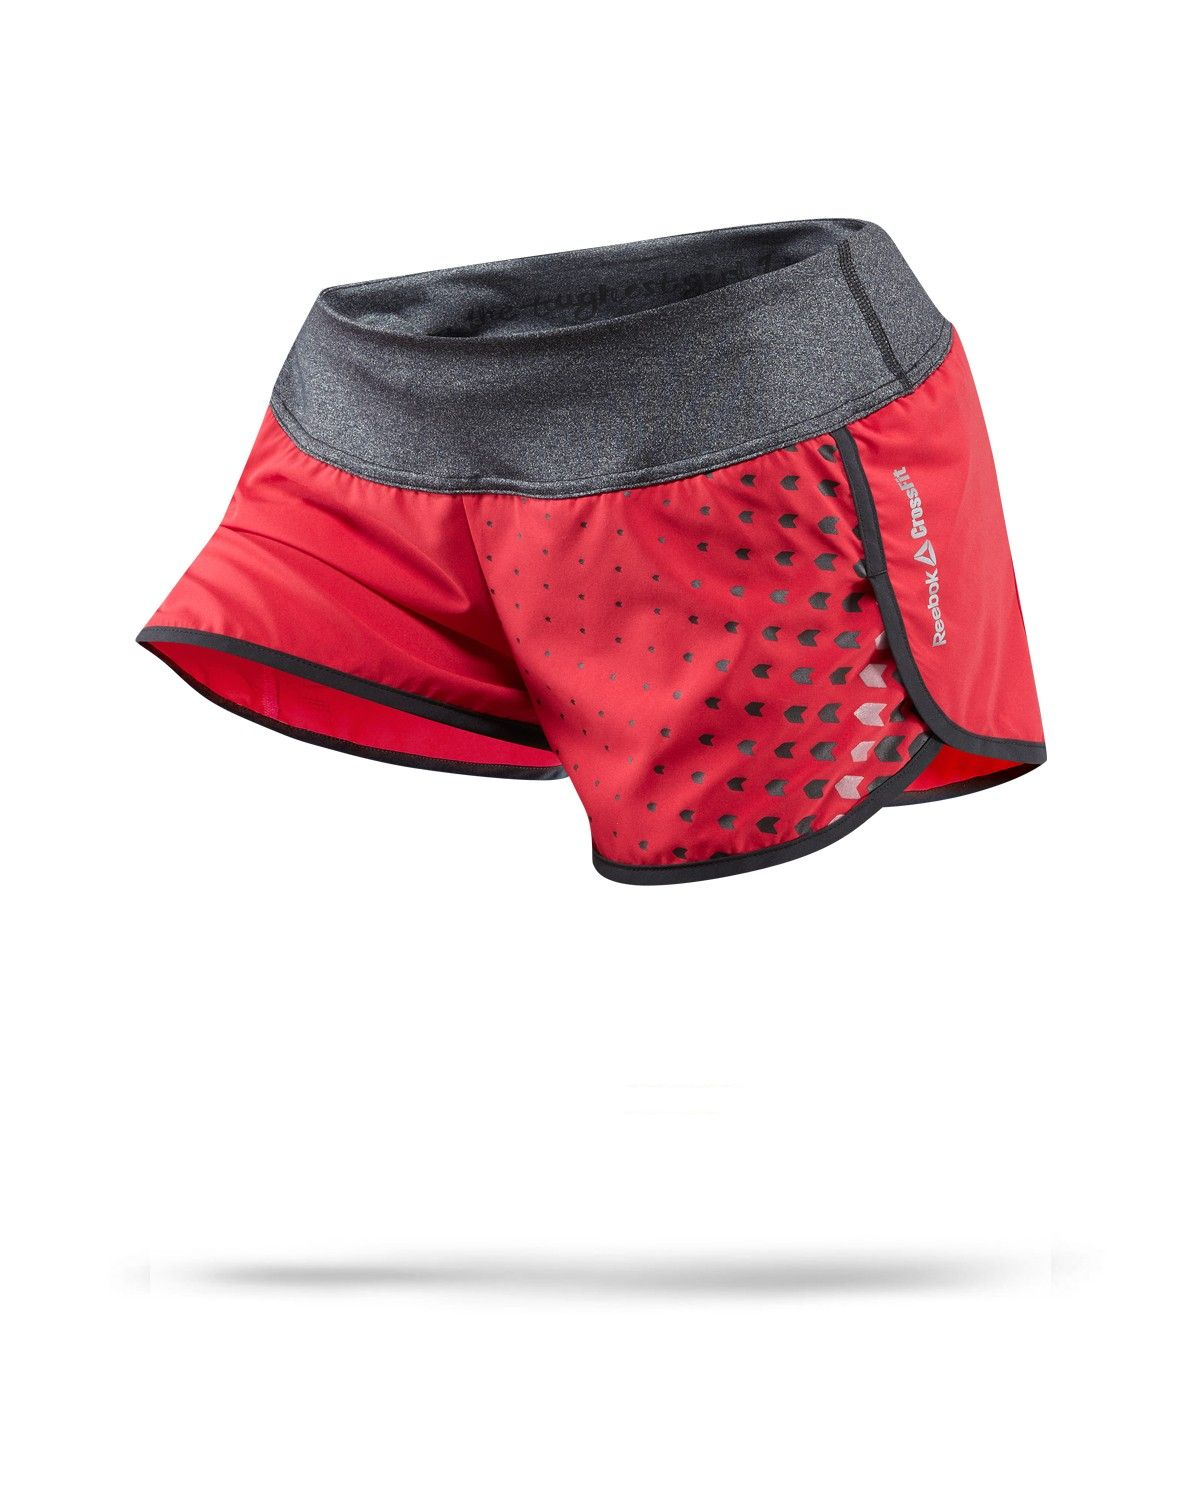 crossfit hq store s crossfit nano speed